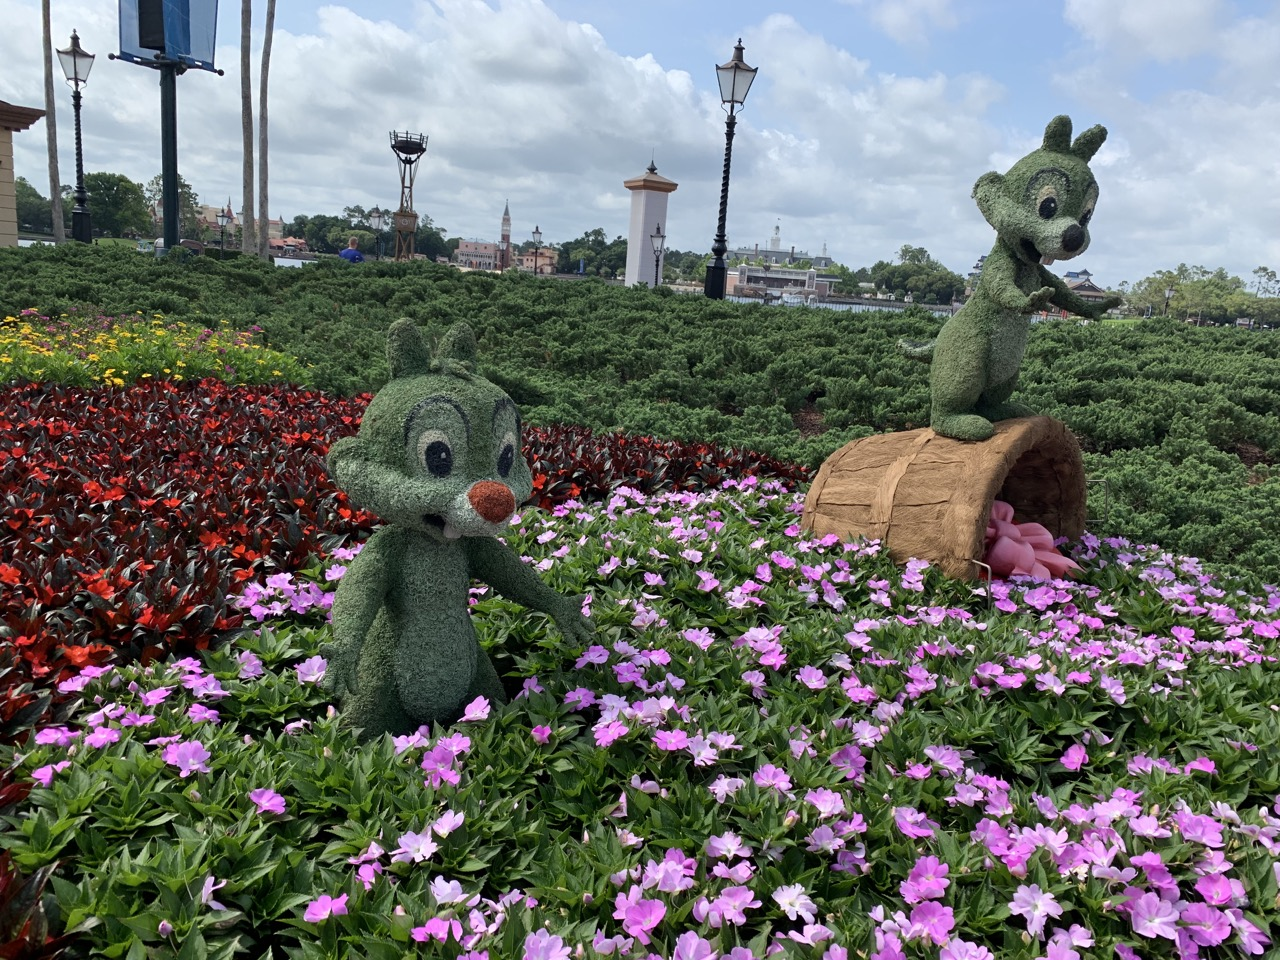 disney world trip report early summer 2019 day six 38 topiary.jpeg